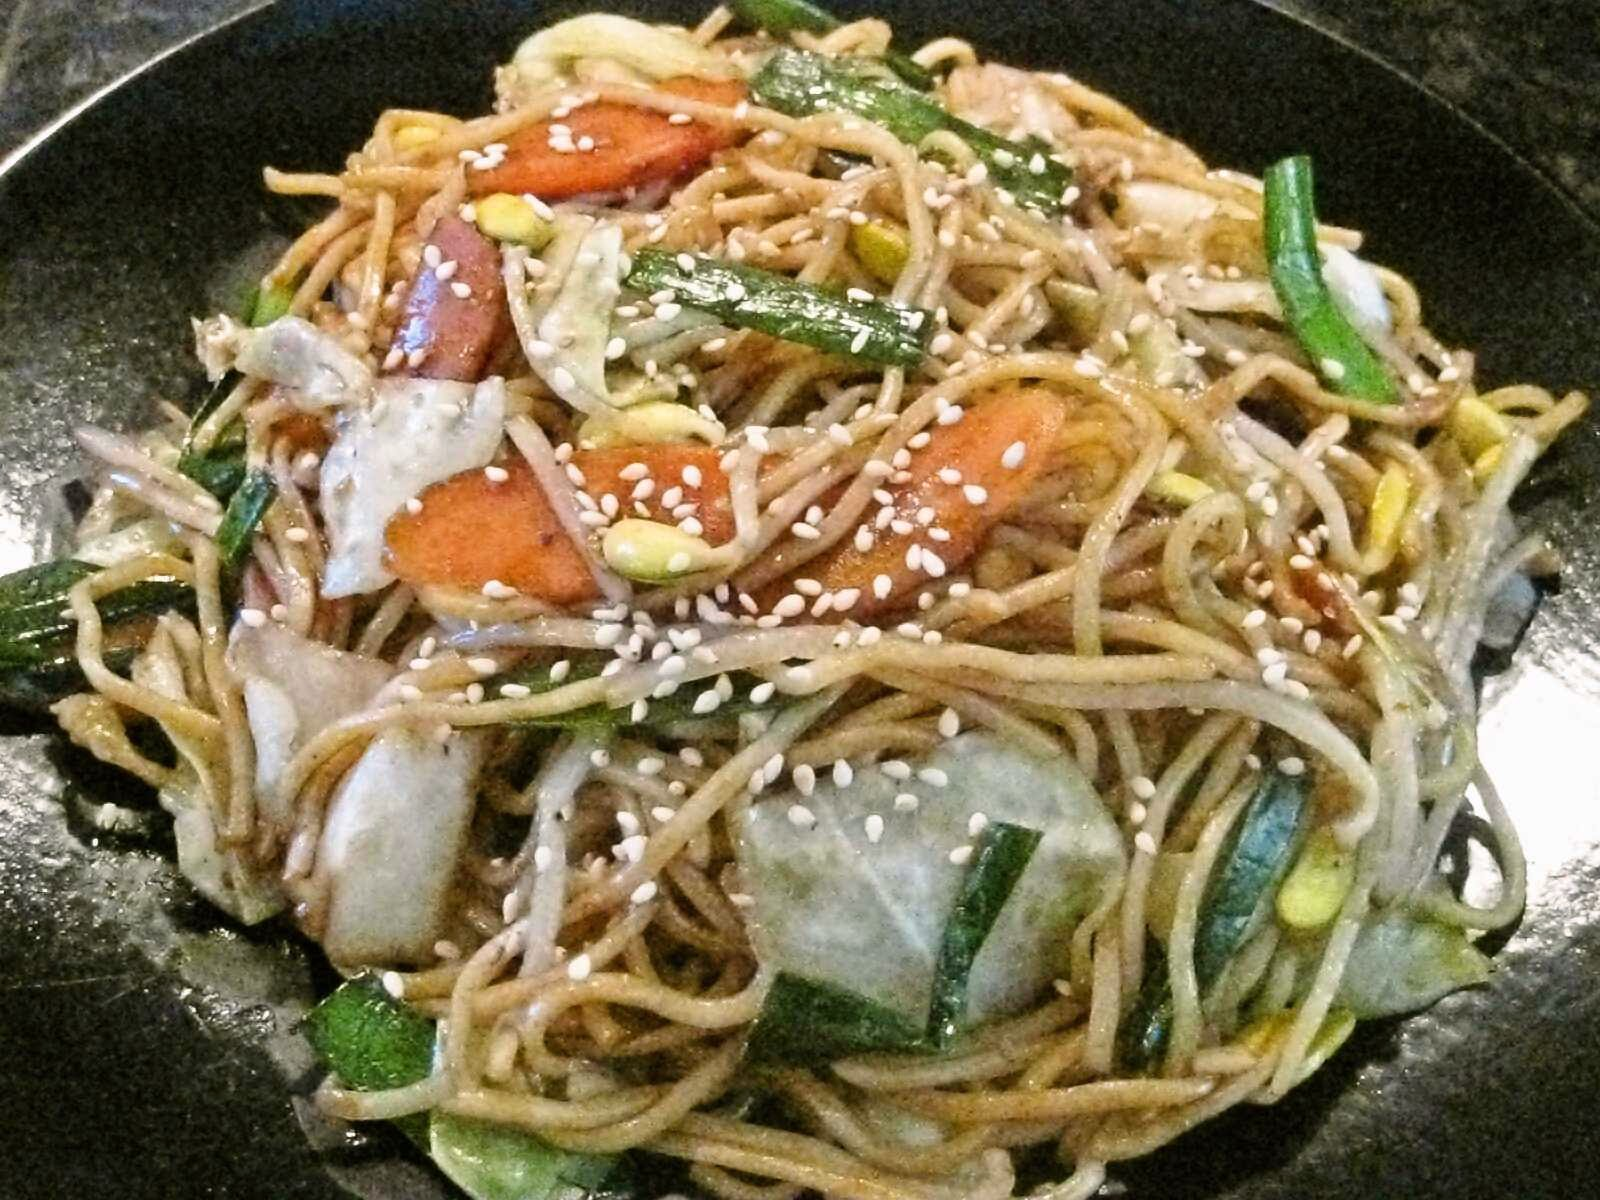 ... for Tom: Daizu moyashi yakisoba / fried noodles with soybean sprouts